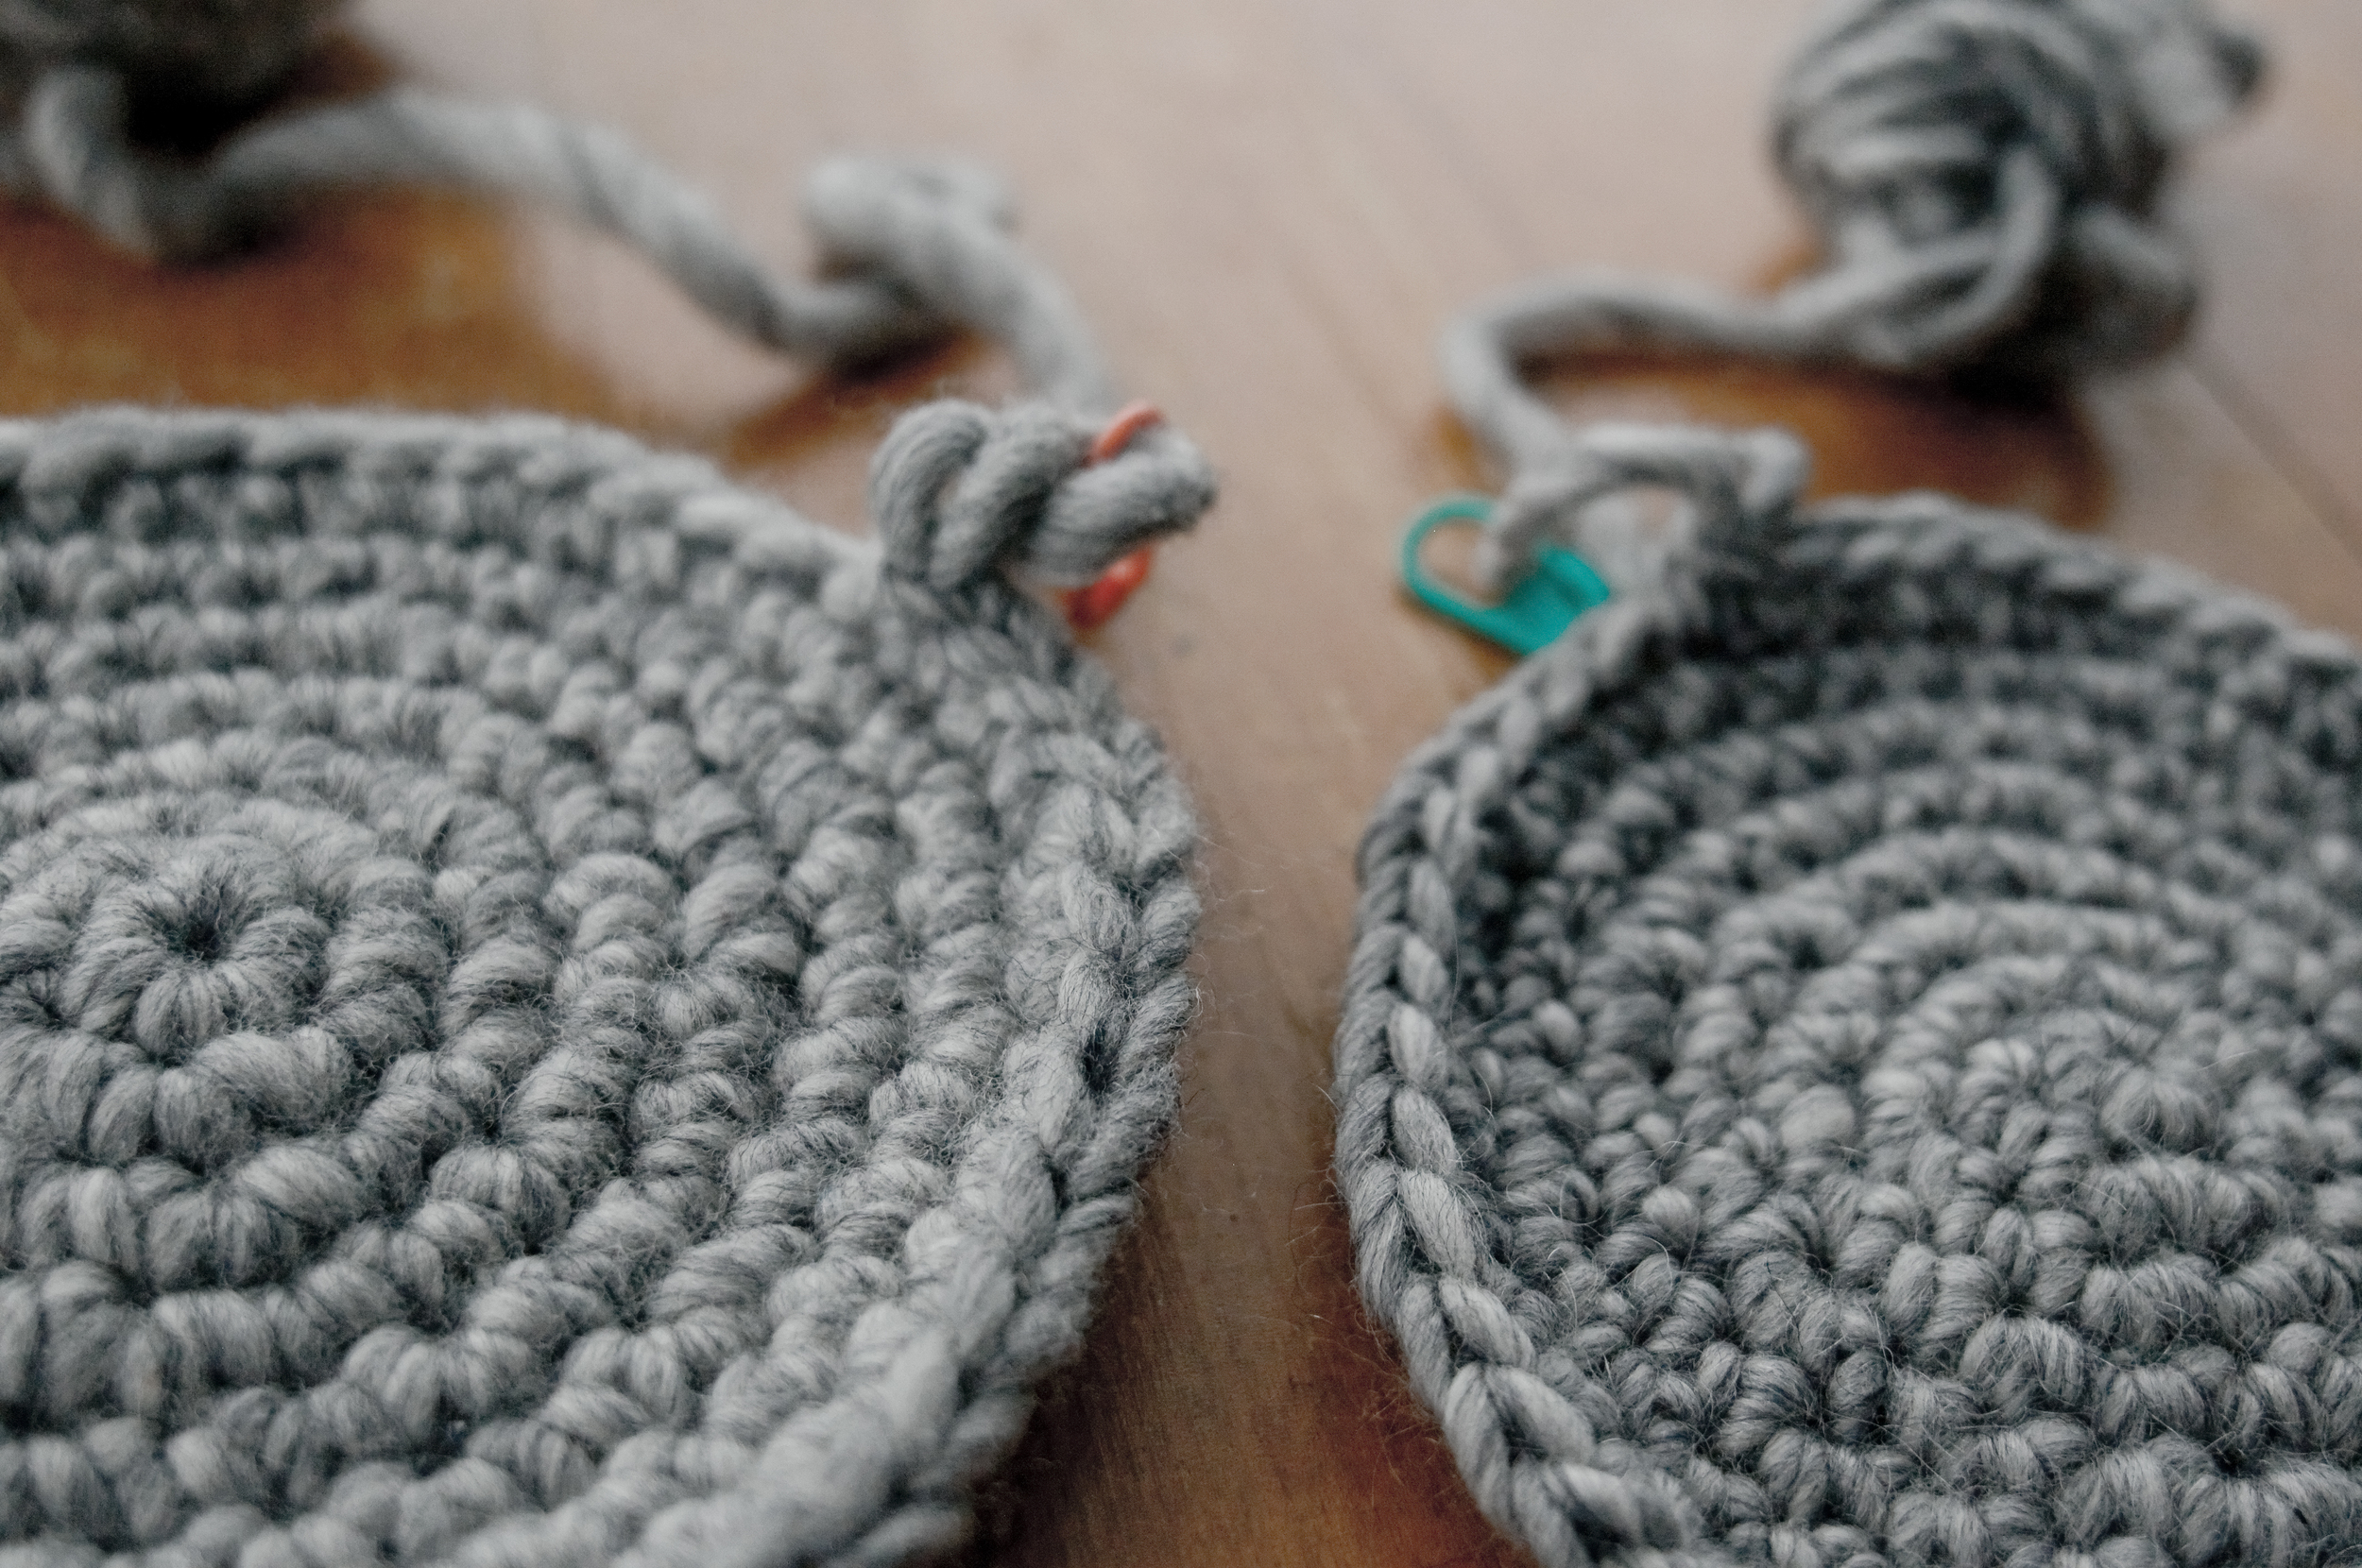 A close-up, for the crochet nerds!